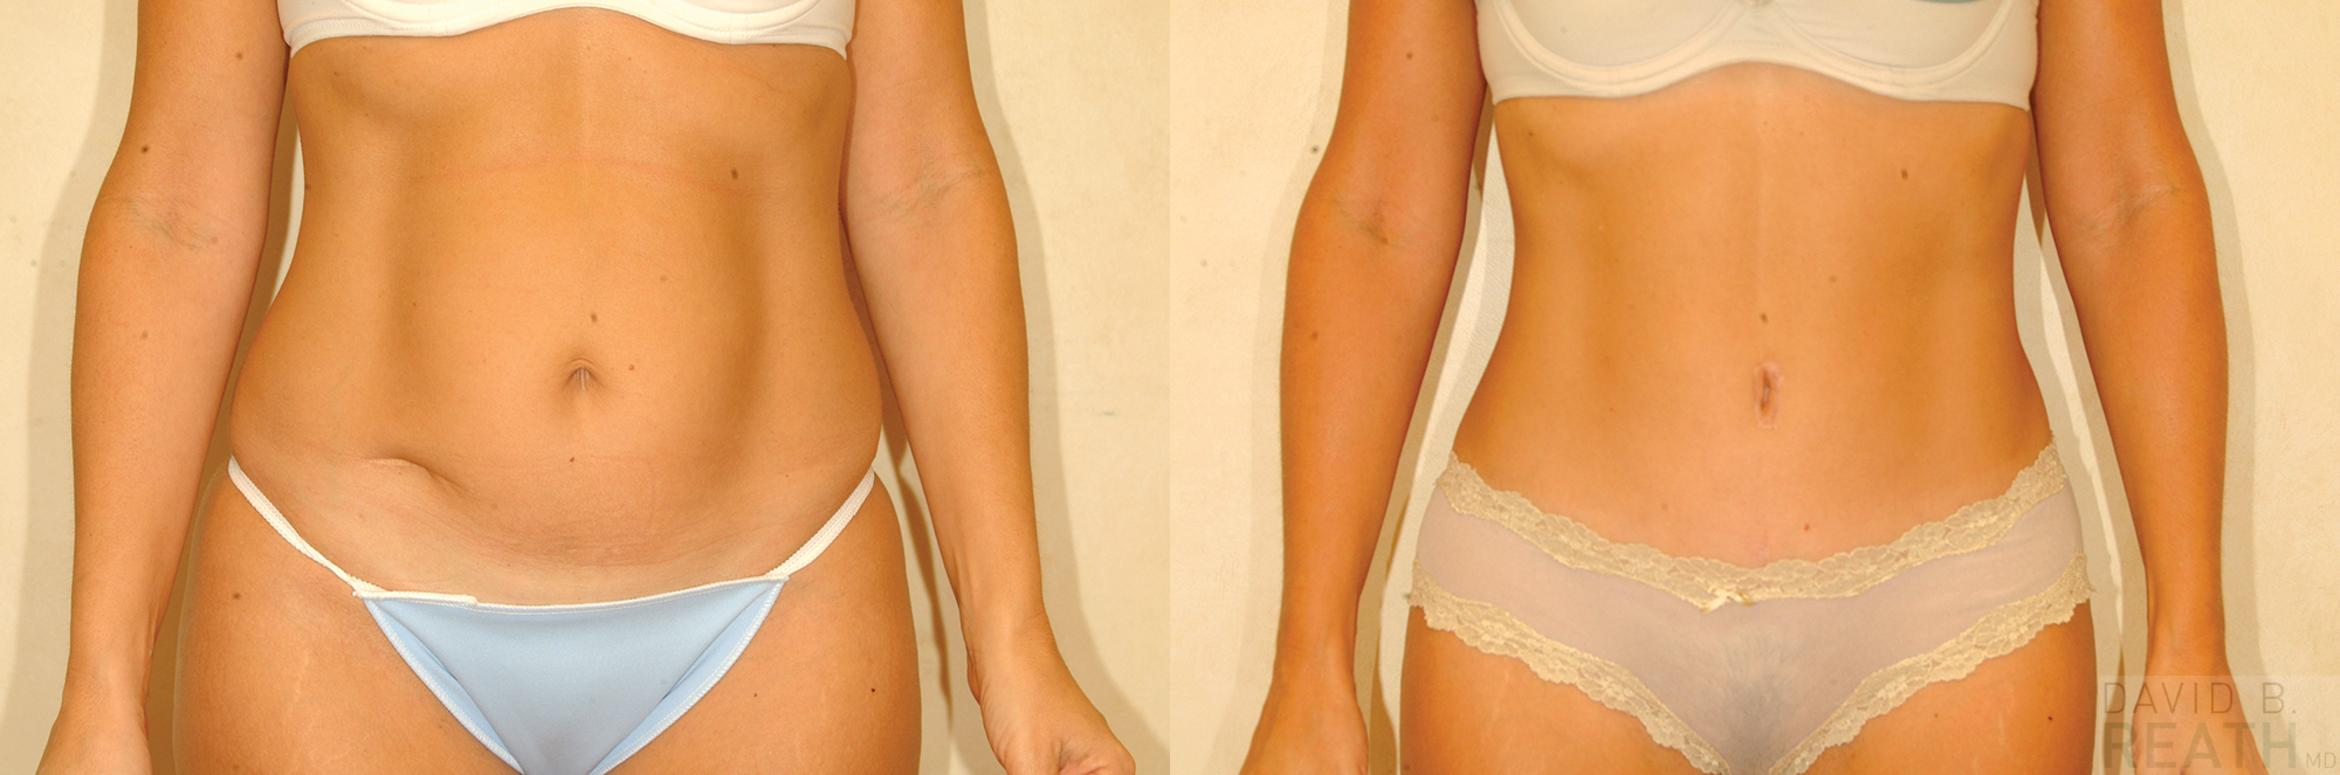 Tummy Tuck (Abdominoplasty) Before & After Photo | Knoxville, Tennessee | David B. Reath, MD